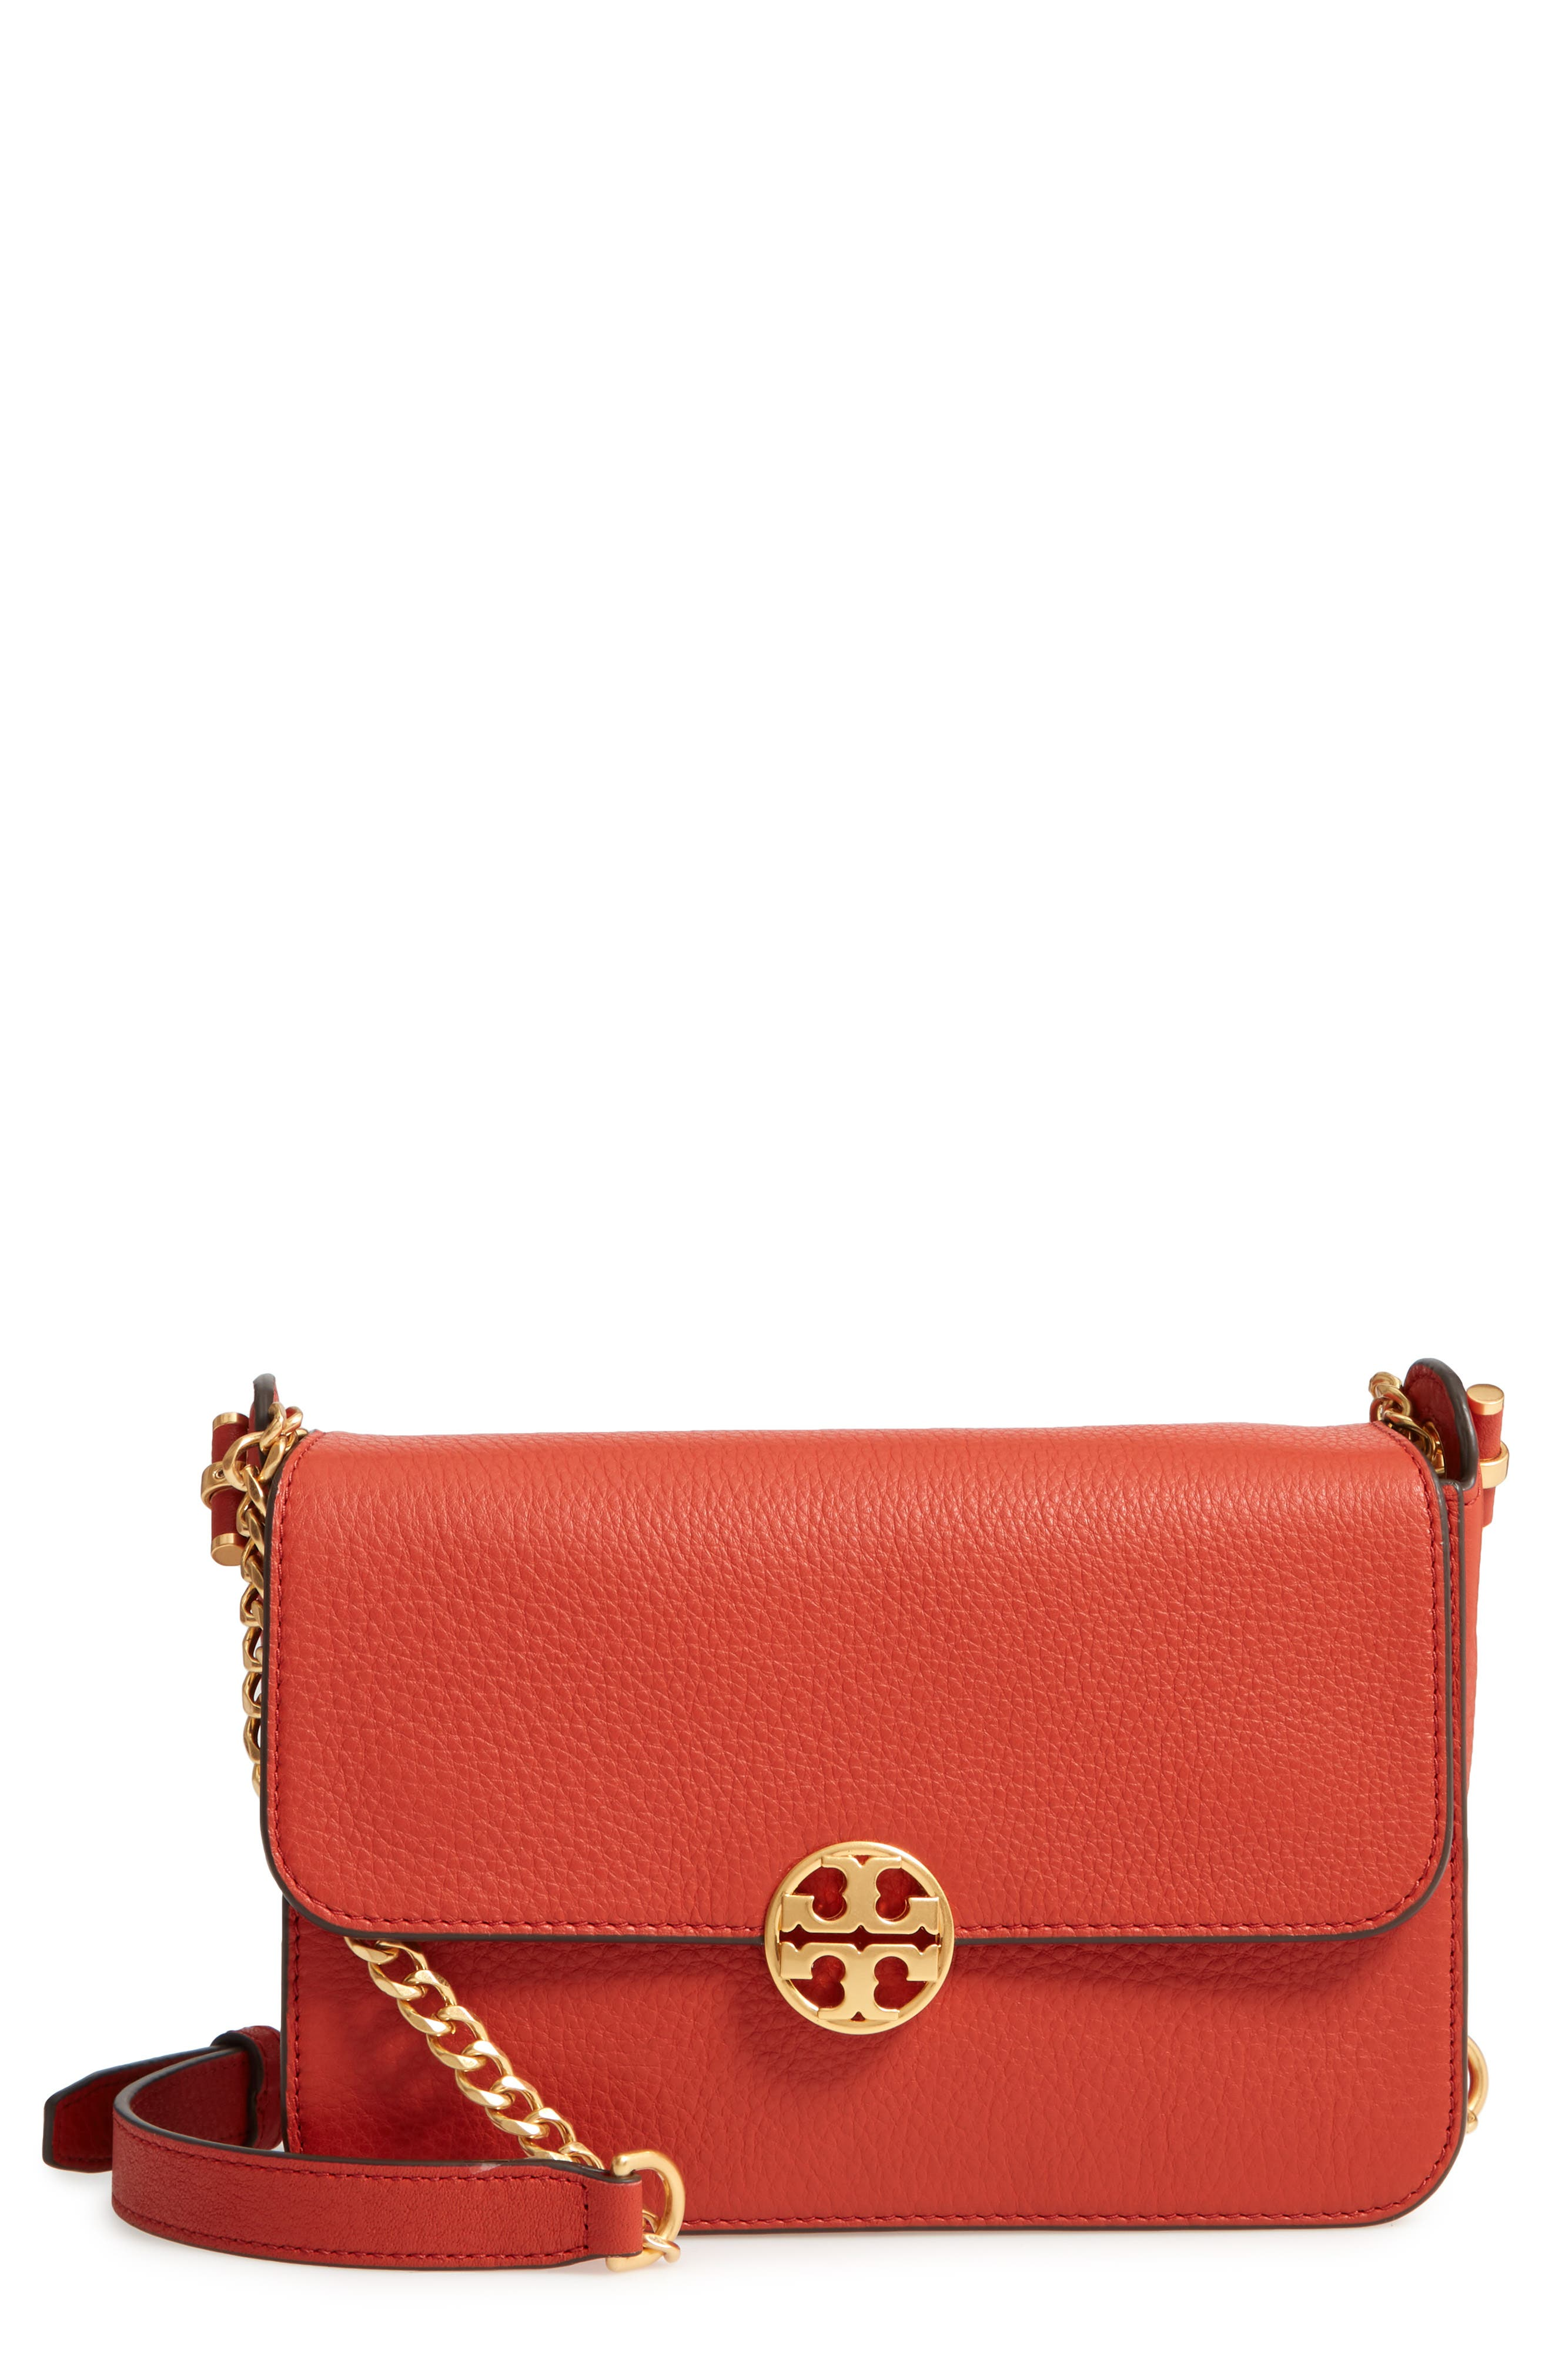 Chelsea Leather Crossbody Bag,                             Main thumbnail 1, color,                             Kola